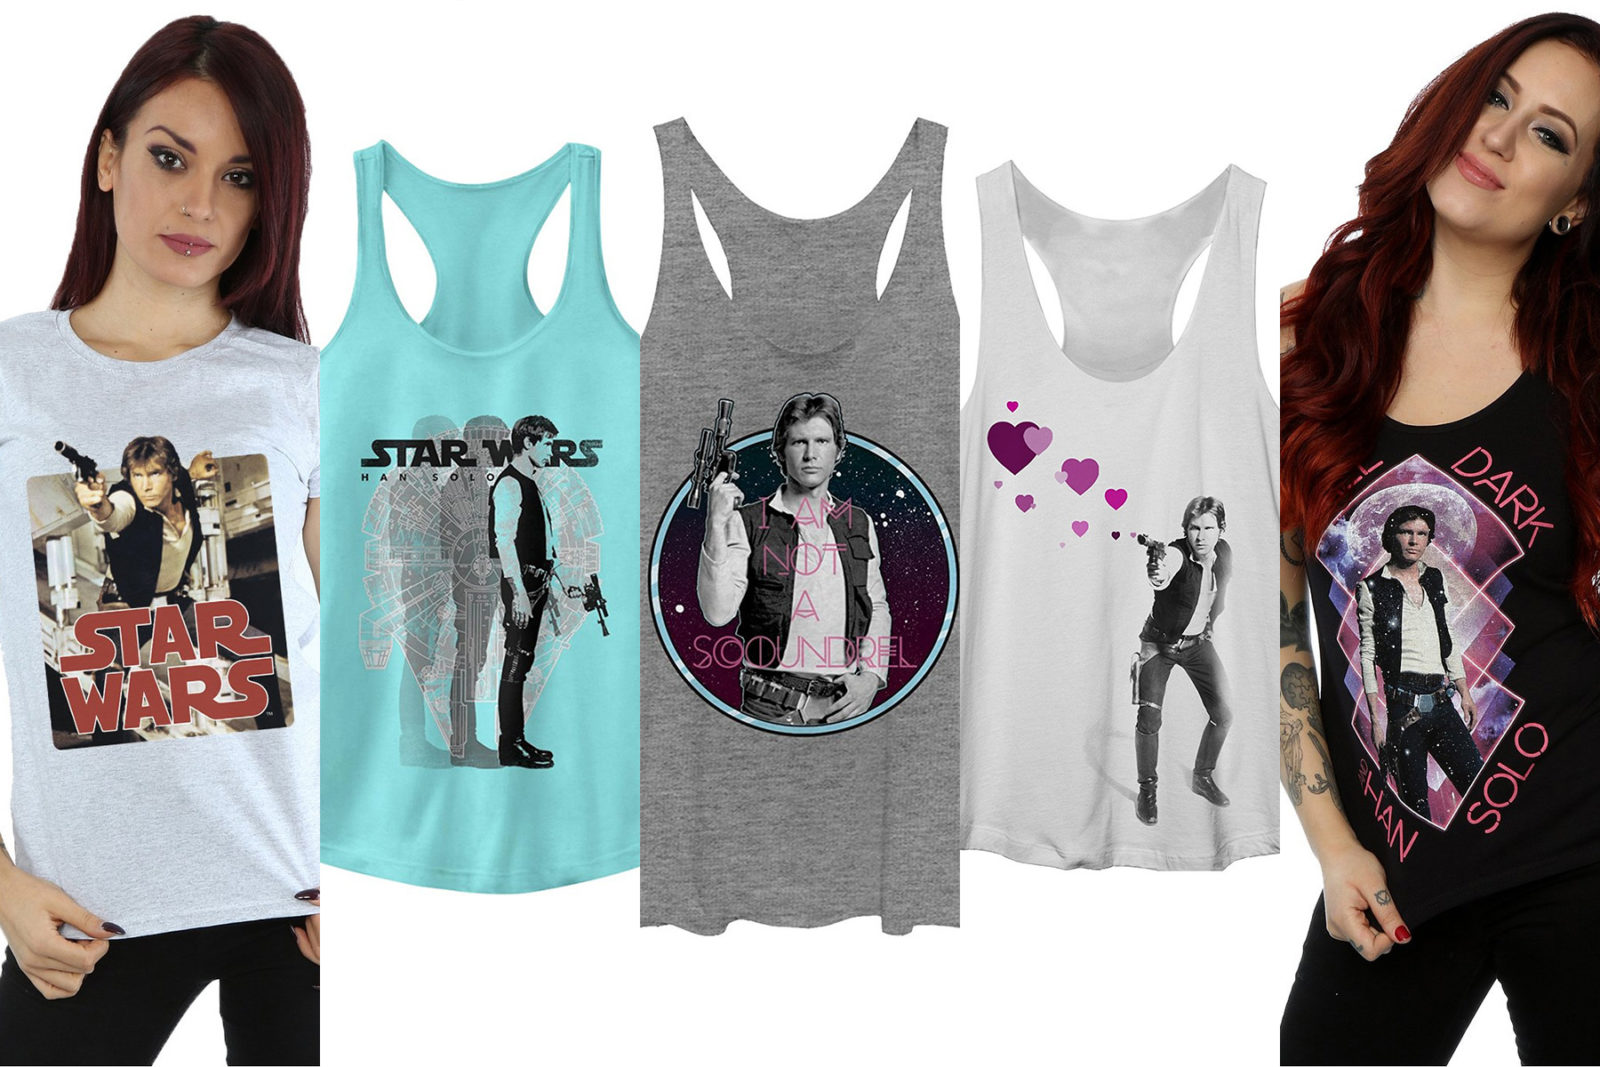 Leia's List - Women's Star Wars Han Solo printed t-shirts and tank tops